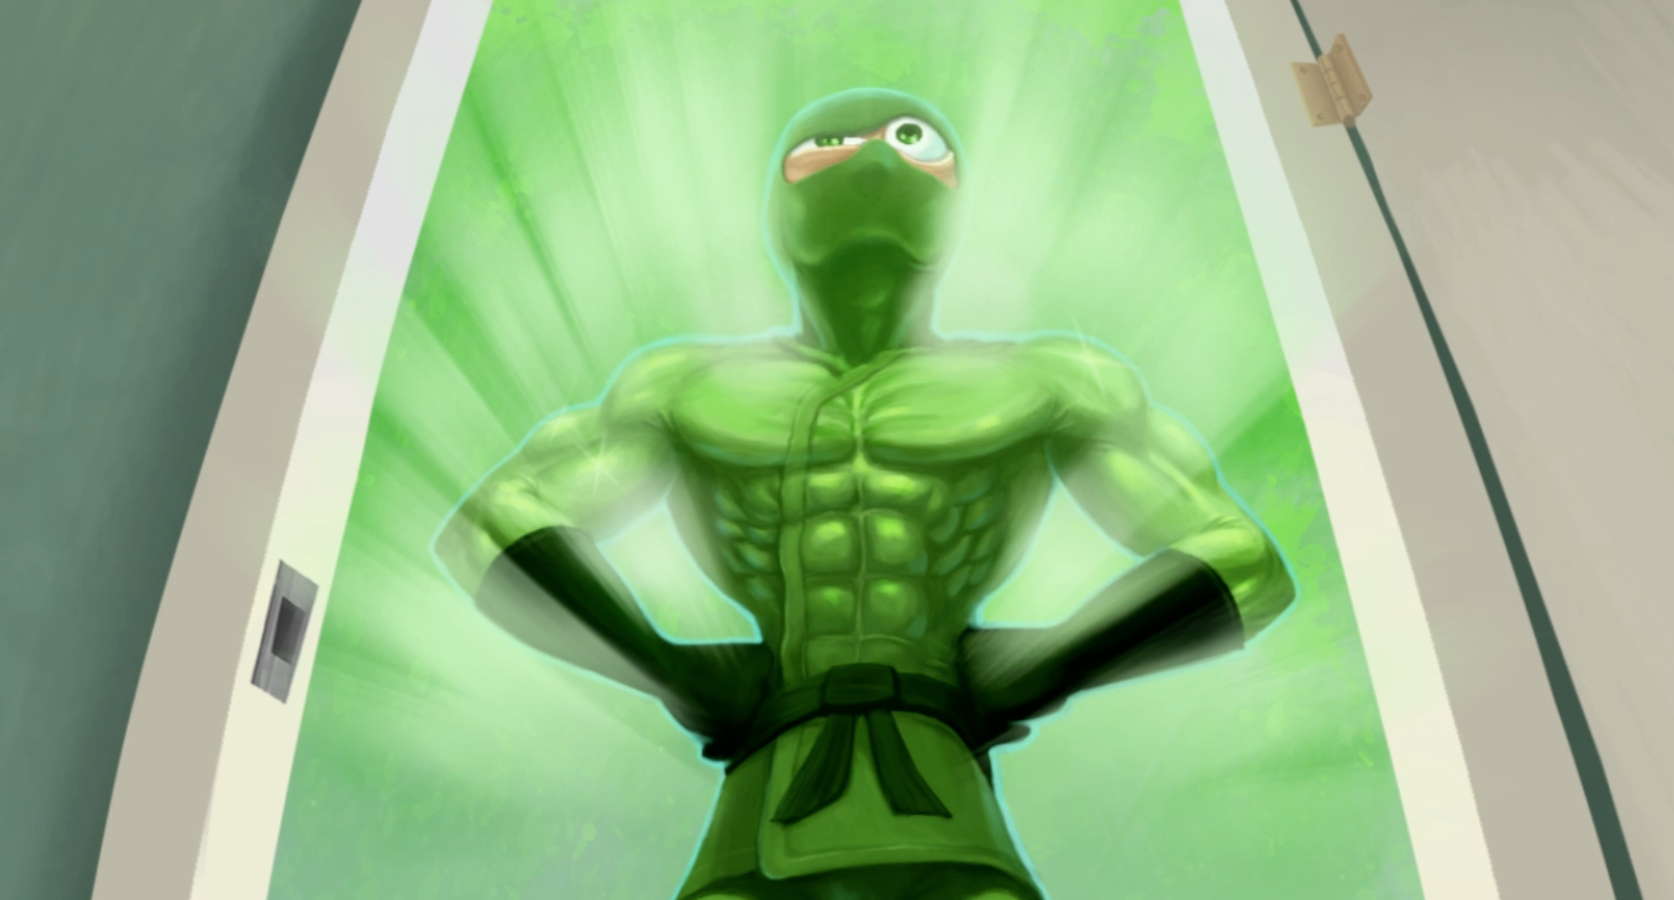 The Green Ninja, an animated green frog like character stands with his hands on on hps in the middle of a door way, wearing black long gloves and a ninja belt. Green light shines behind him.